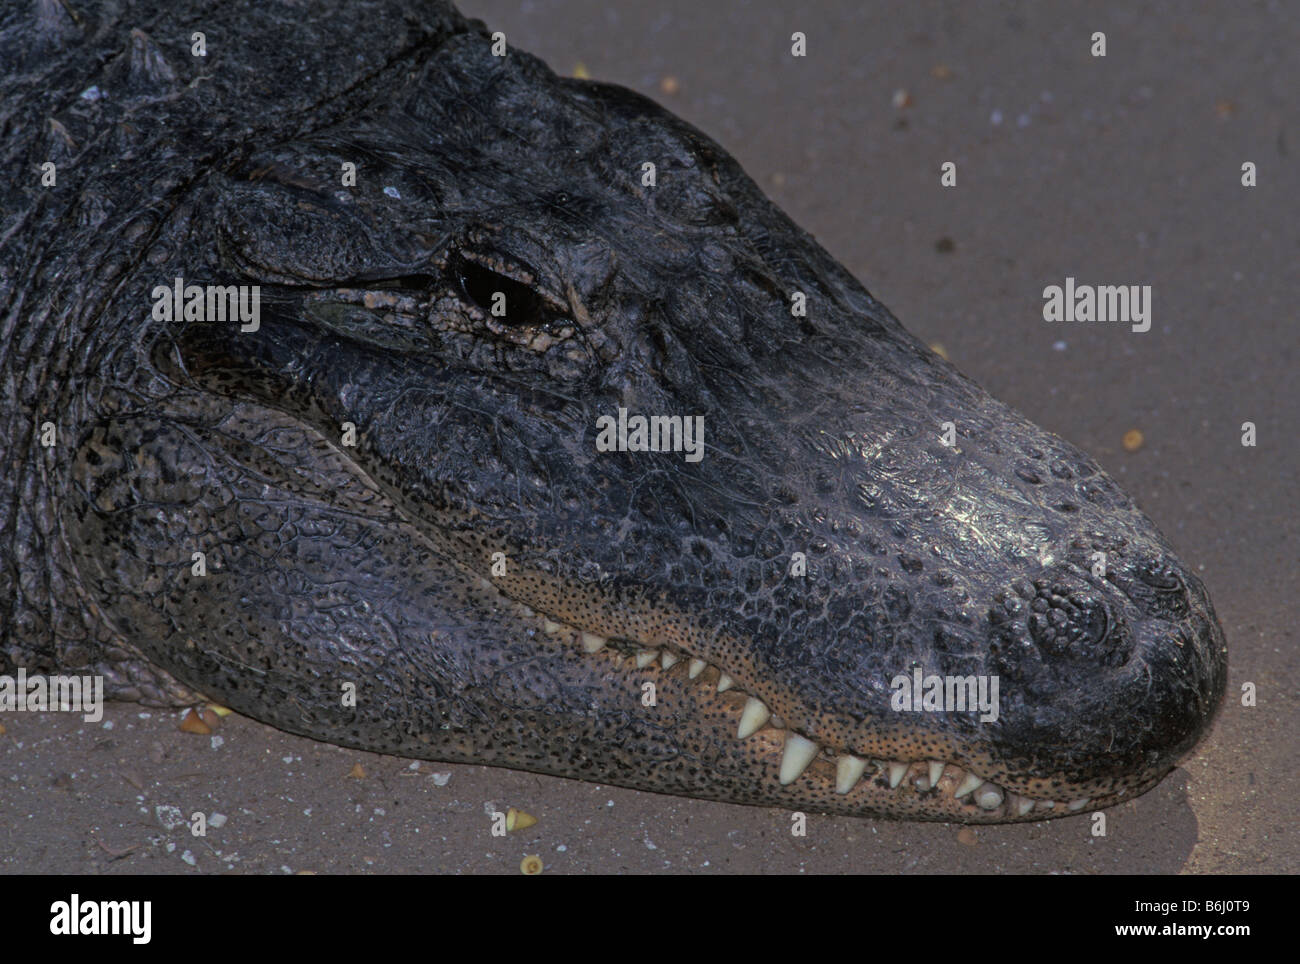 head view of alligator on land - Stock Image